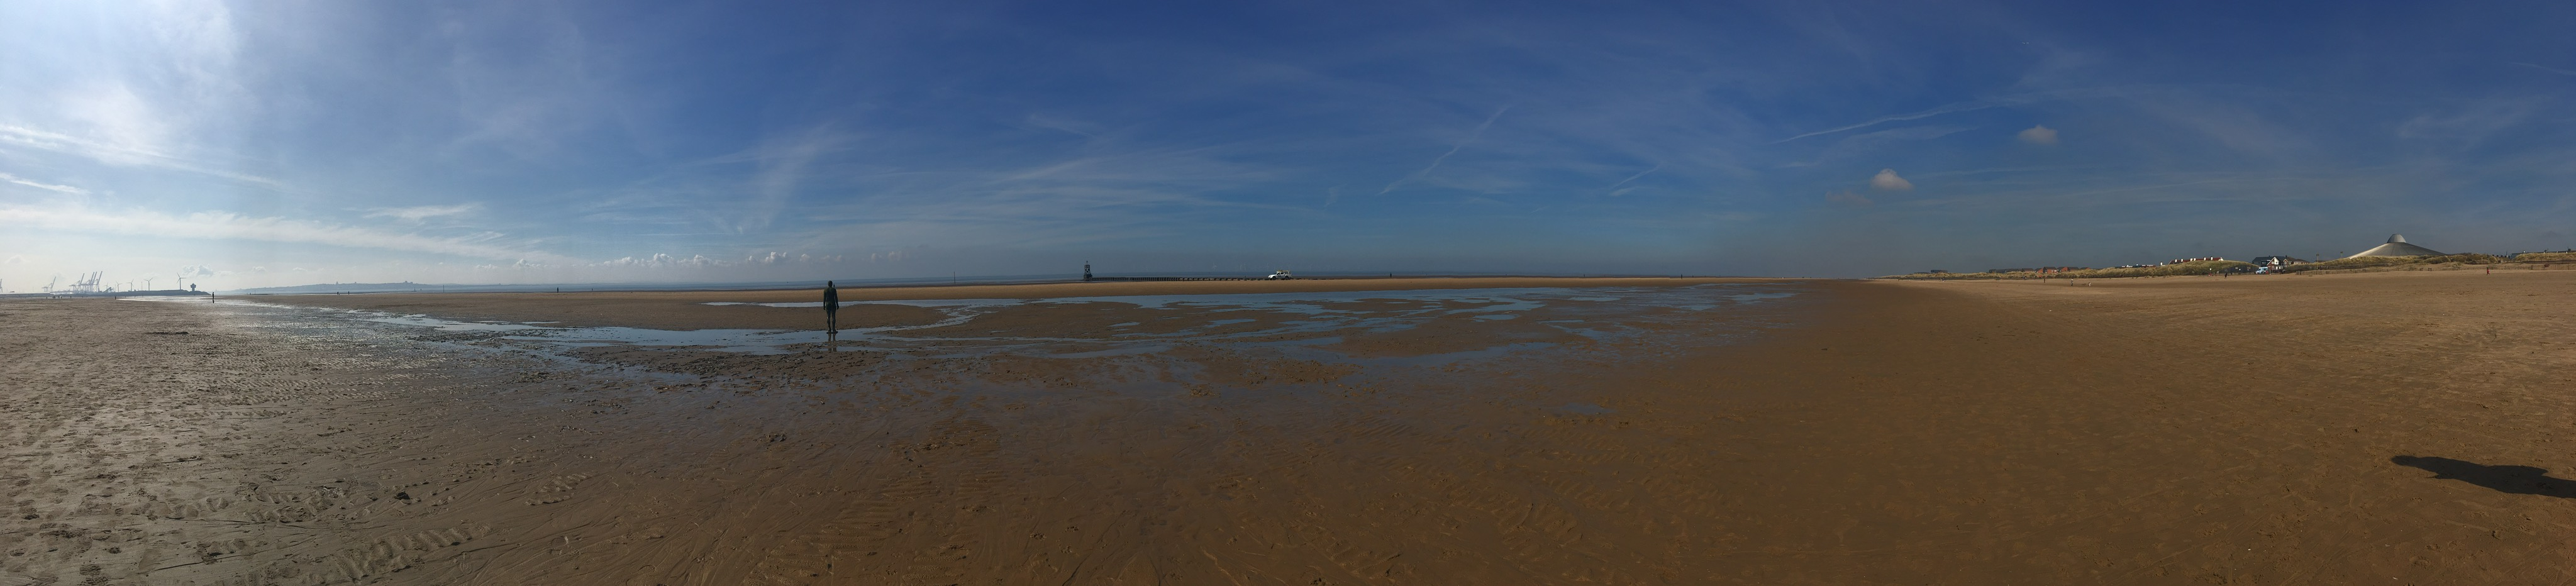 Crosby Beach - Another Place by Antony Gormley